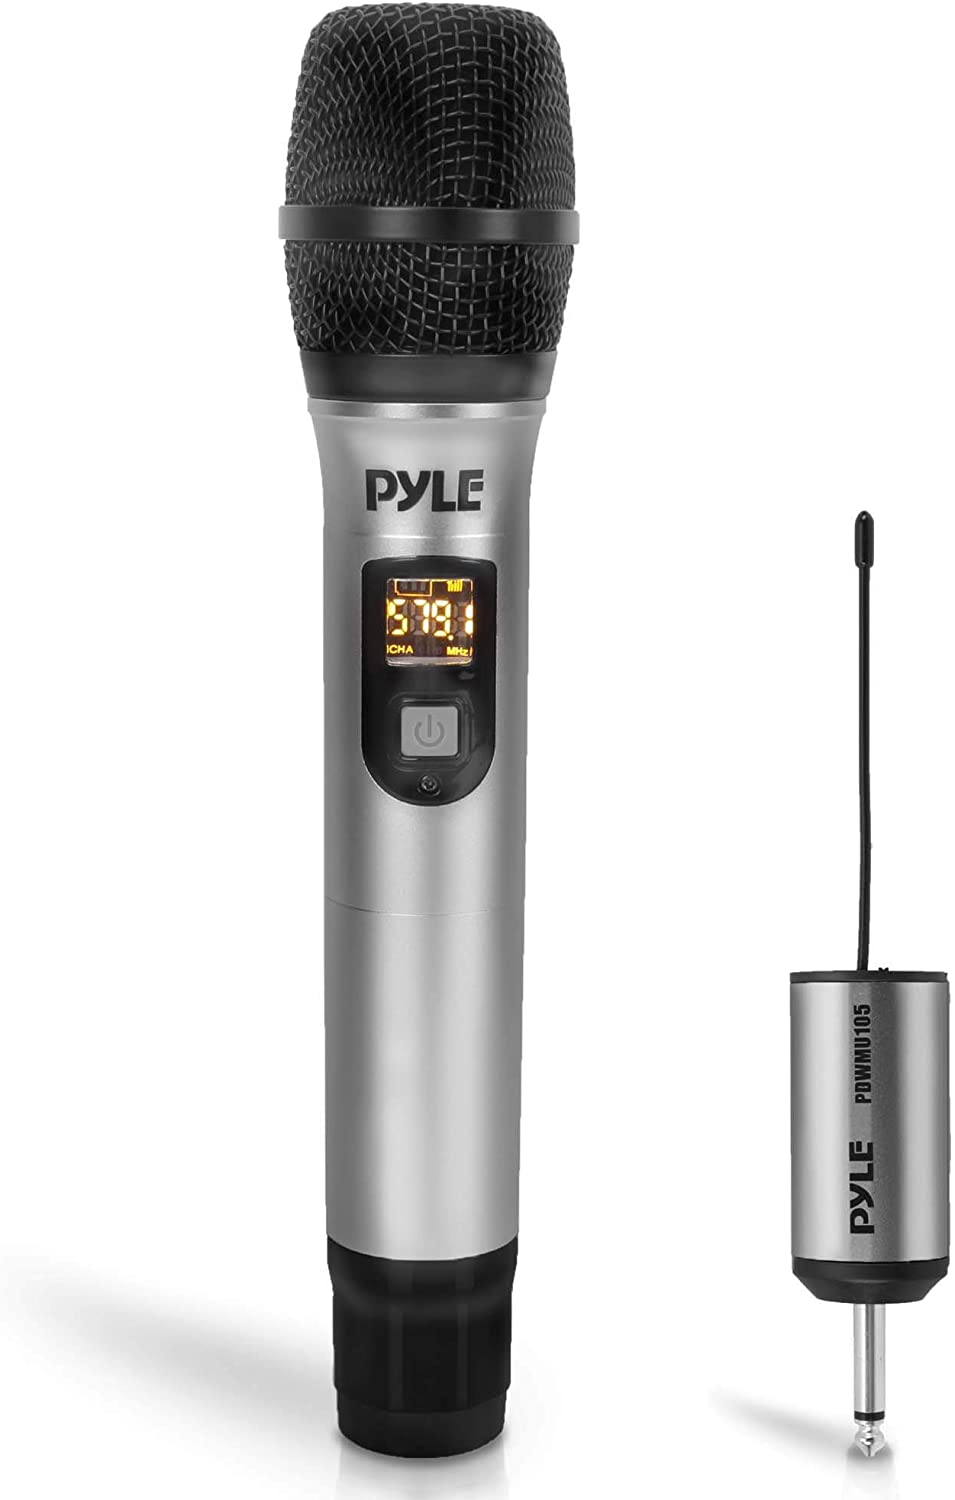 Portable UHF Wireless Microphone System - Professional Battery Operated Handheld Dynamic Unidirectional Cordless Microphone Transmitter Set w/Adapter Receiver, for PA Karaoke DJ Party - Pyle PDWMU105